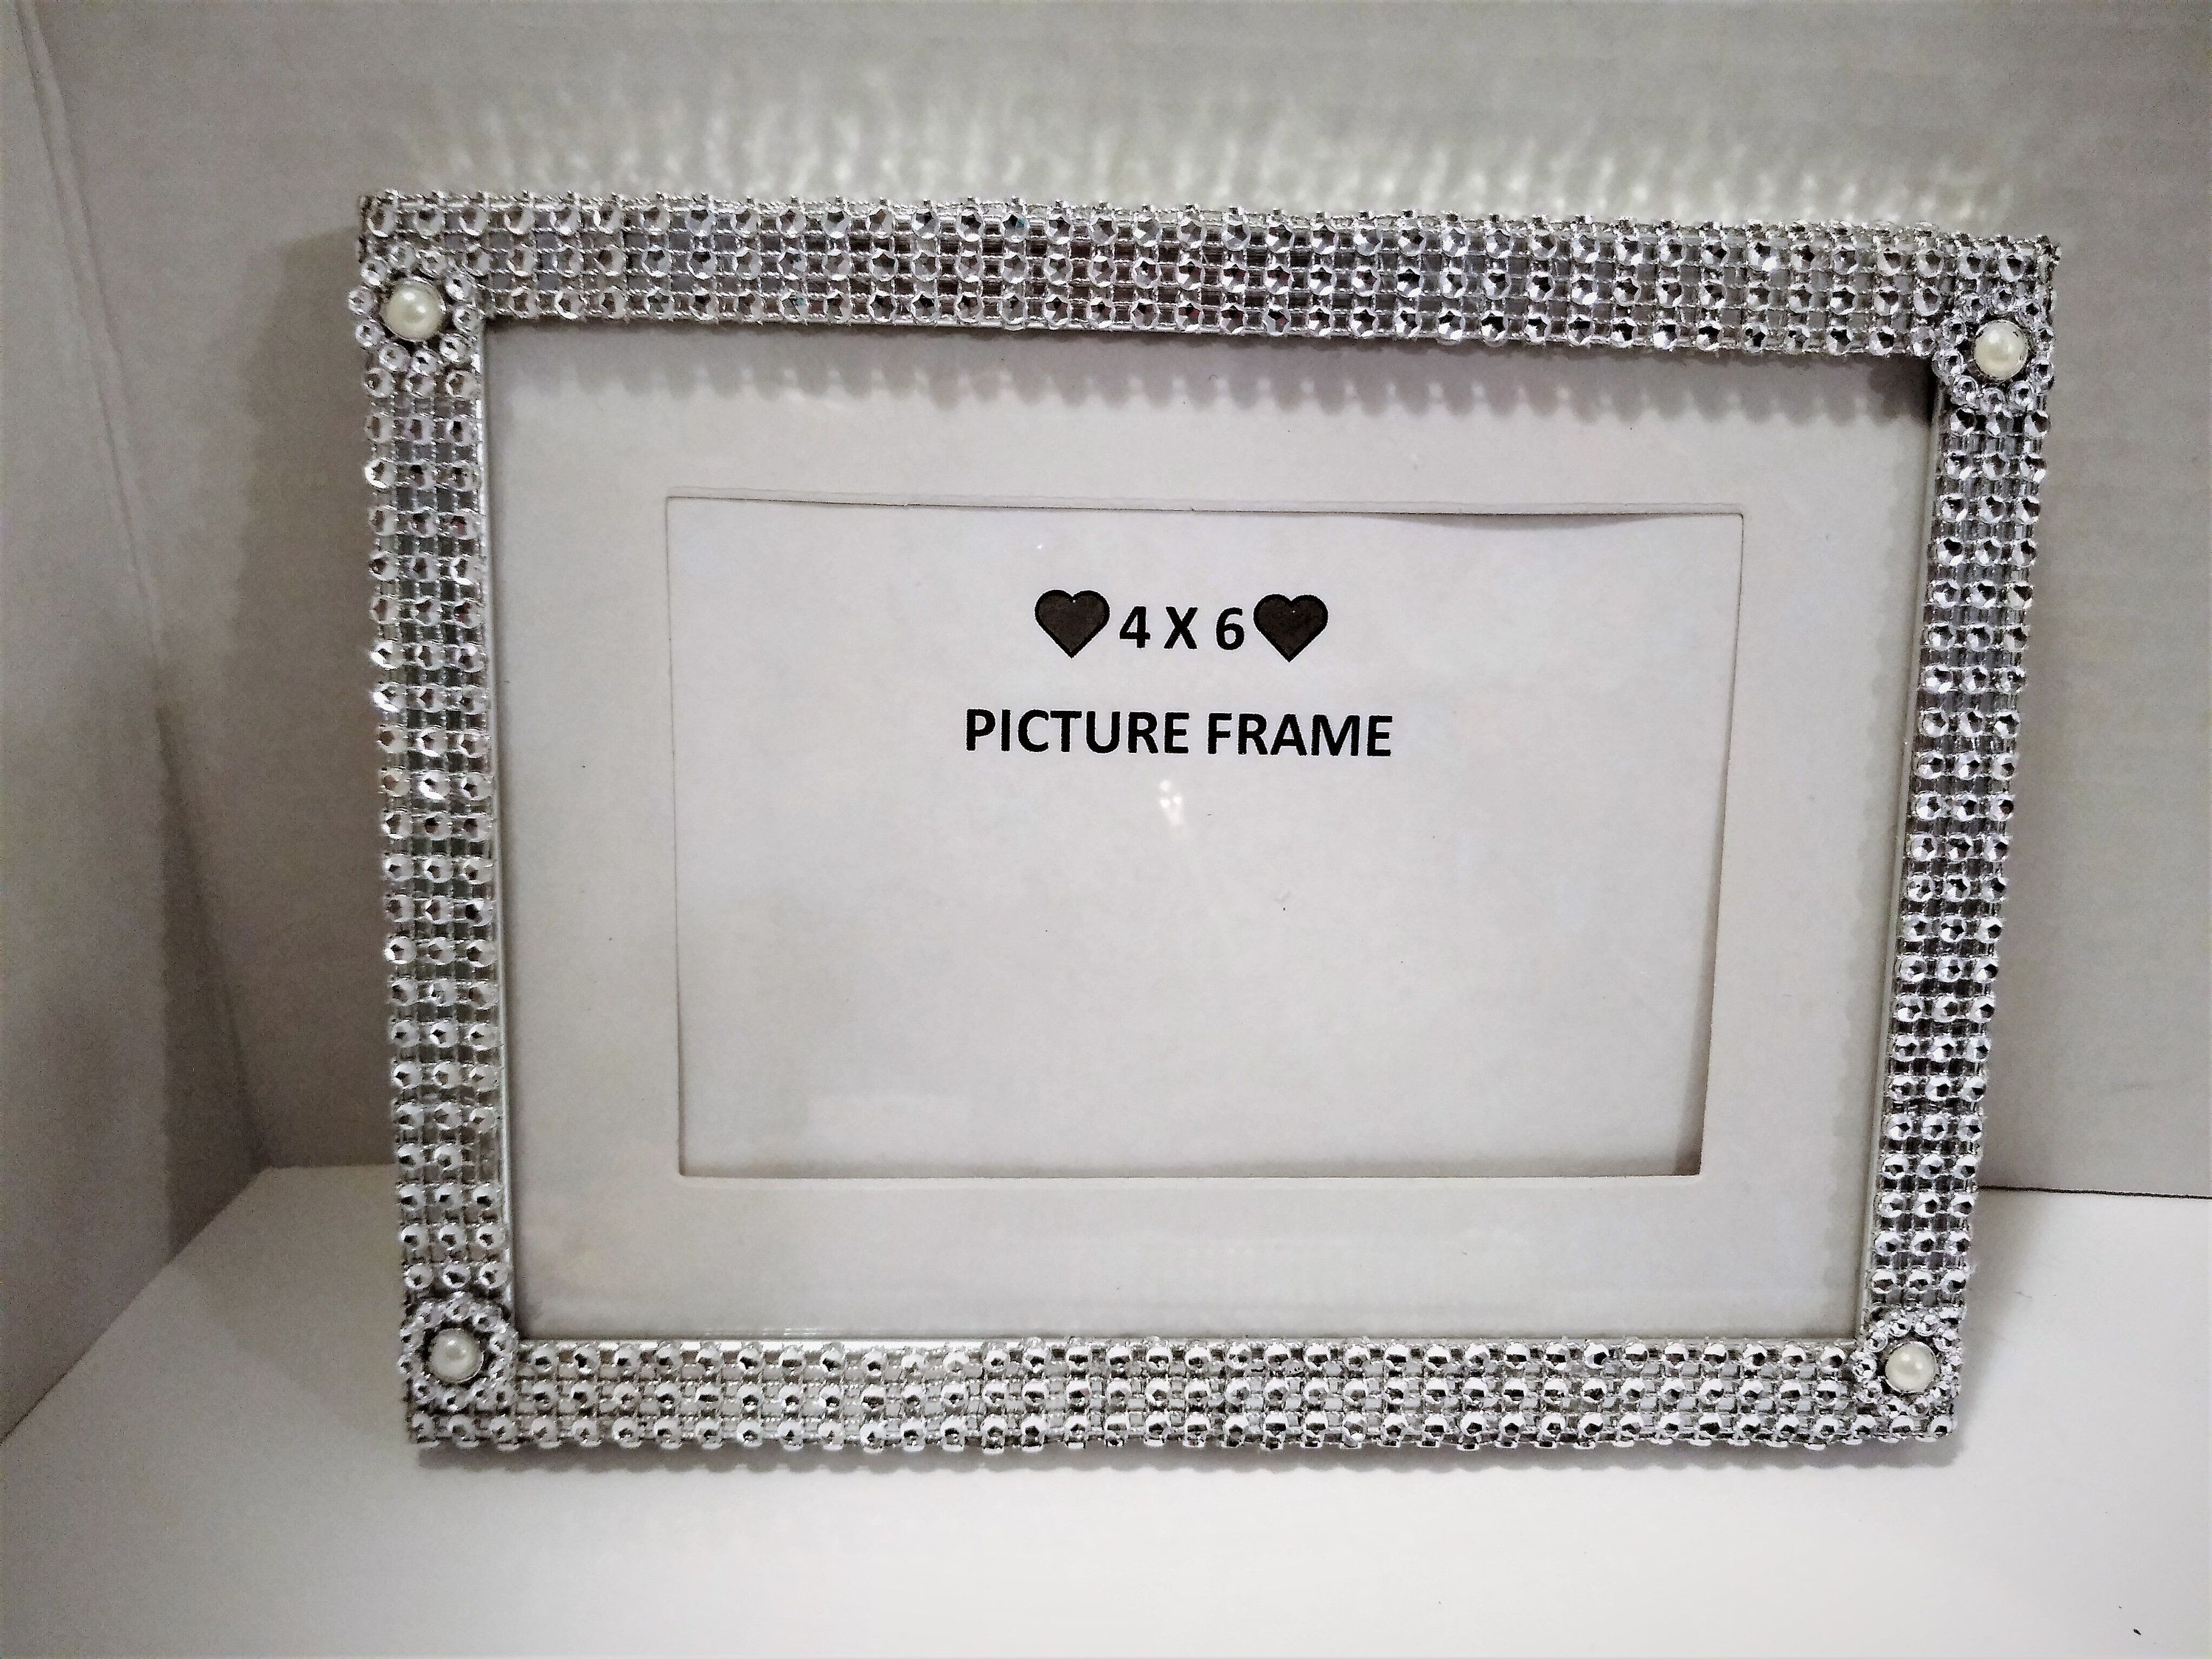 4x6 Silver Picture Frame Rhinestone Trim Picture Frame Etsy In 2021 Silver Picture Frames Picture Frames Bling Picture Frames